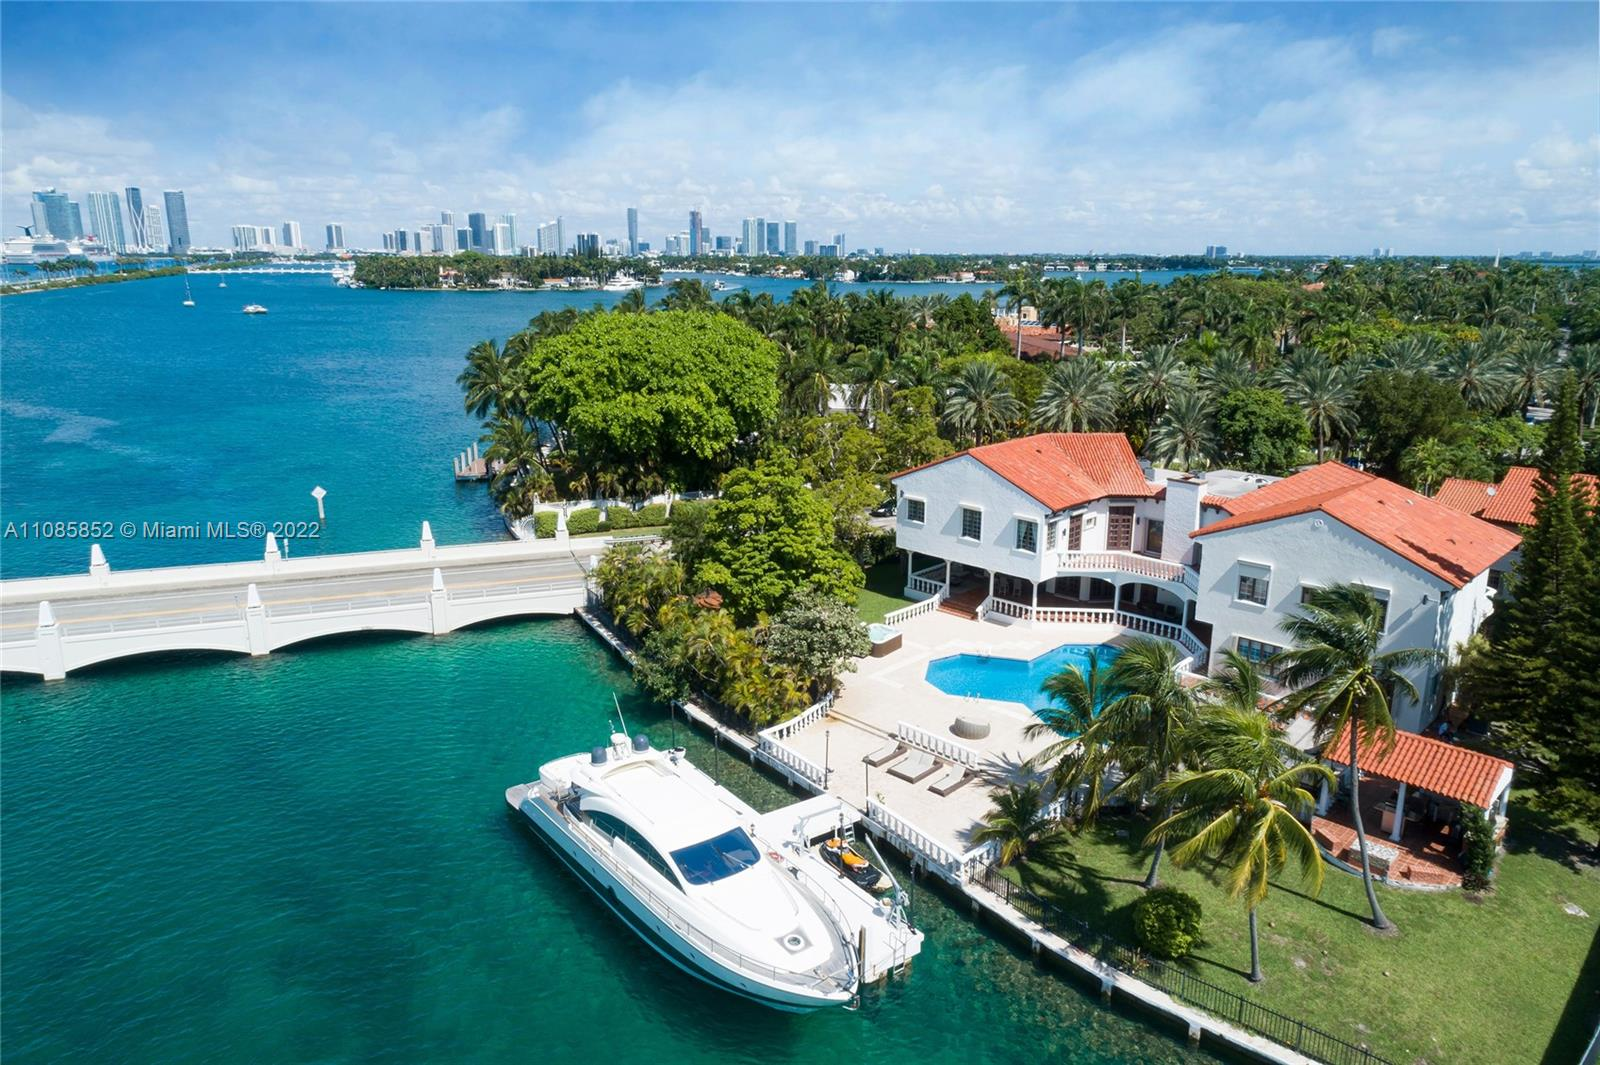 Now is the time to secure one of the last available opportunities to build your dream home on Miami's ultra-exclusive Island to the Stars. Star island is a guard gated private island with only 34 homes located in Miami Beach and within minutes to the Financial District and the very best of South Florida. Build on over an acre with 190' of waterfrontage and a deep-water dock with high 65' bridge clearance for large yachts. With over $300 million sold on Star Island since last year including 5 sales between $32.9M and $49.5M, this is your call to action. *Renderings for illustration purposes only; sale does not include new construction or plans.